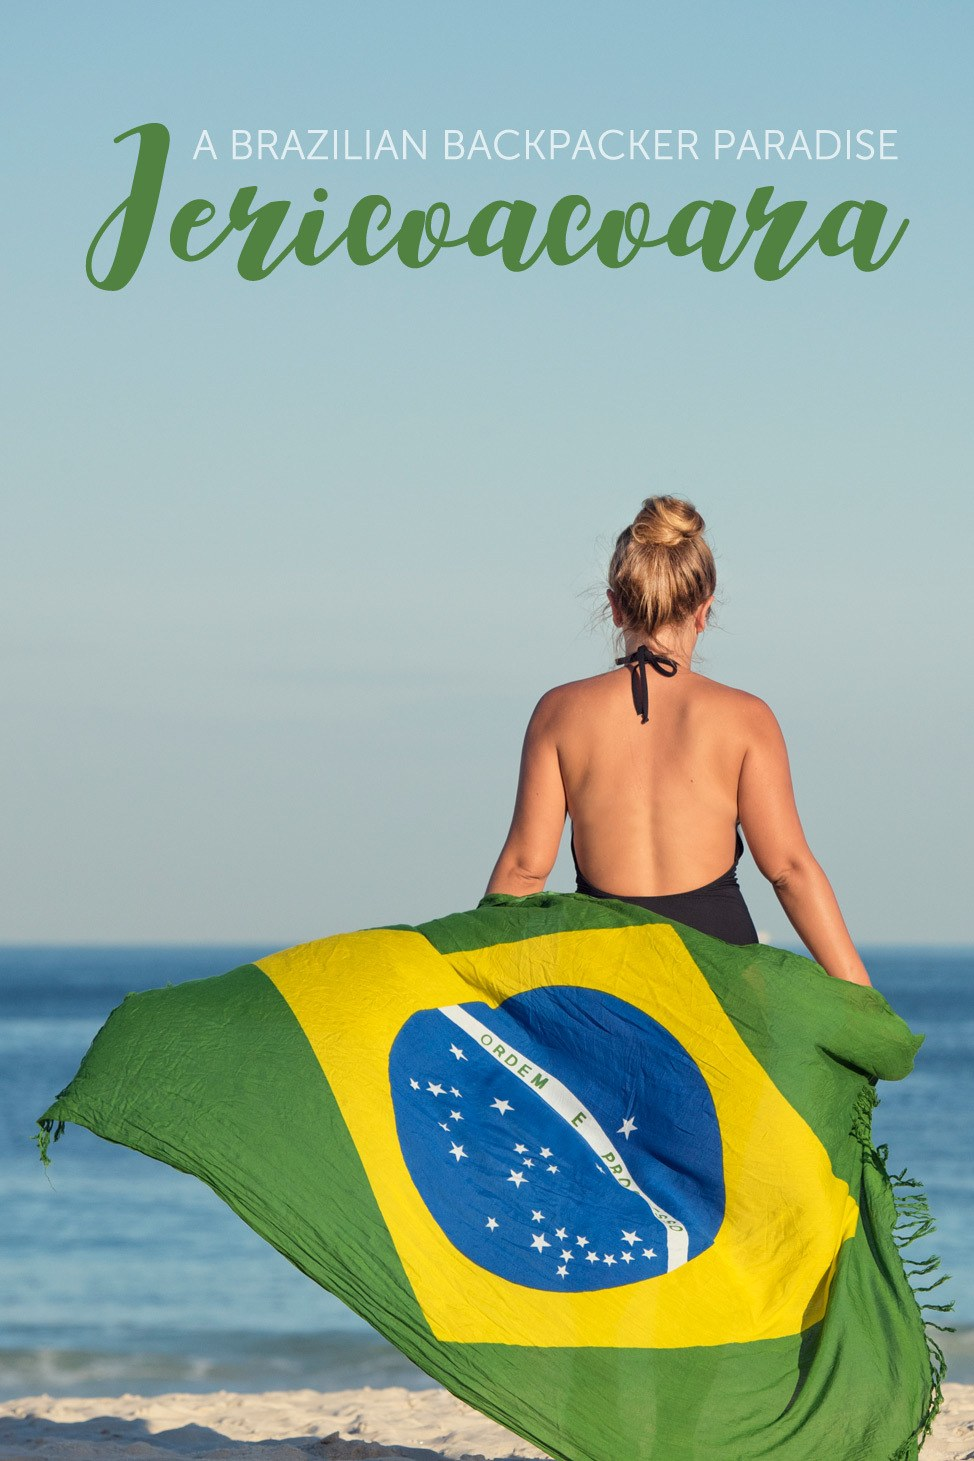 Jericoacoara • A Backpacker's Paradise in Brazil